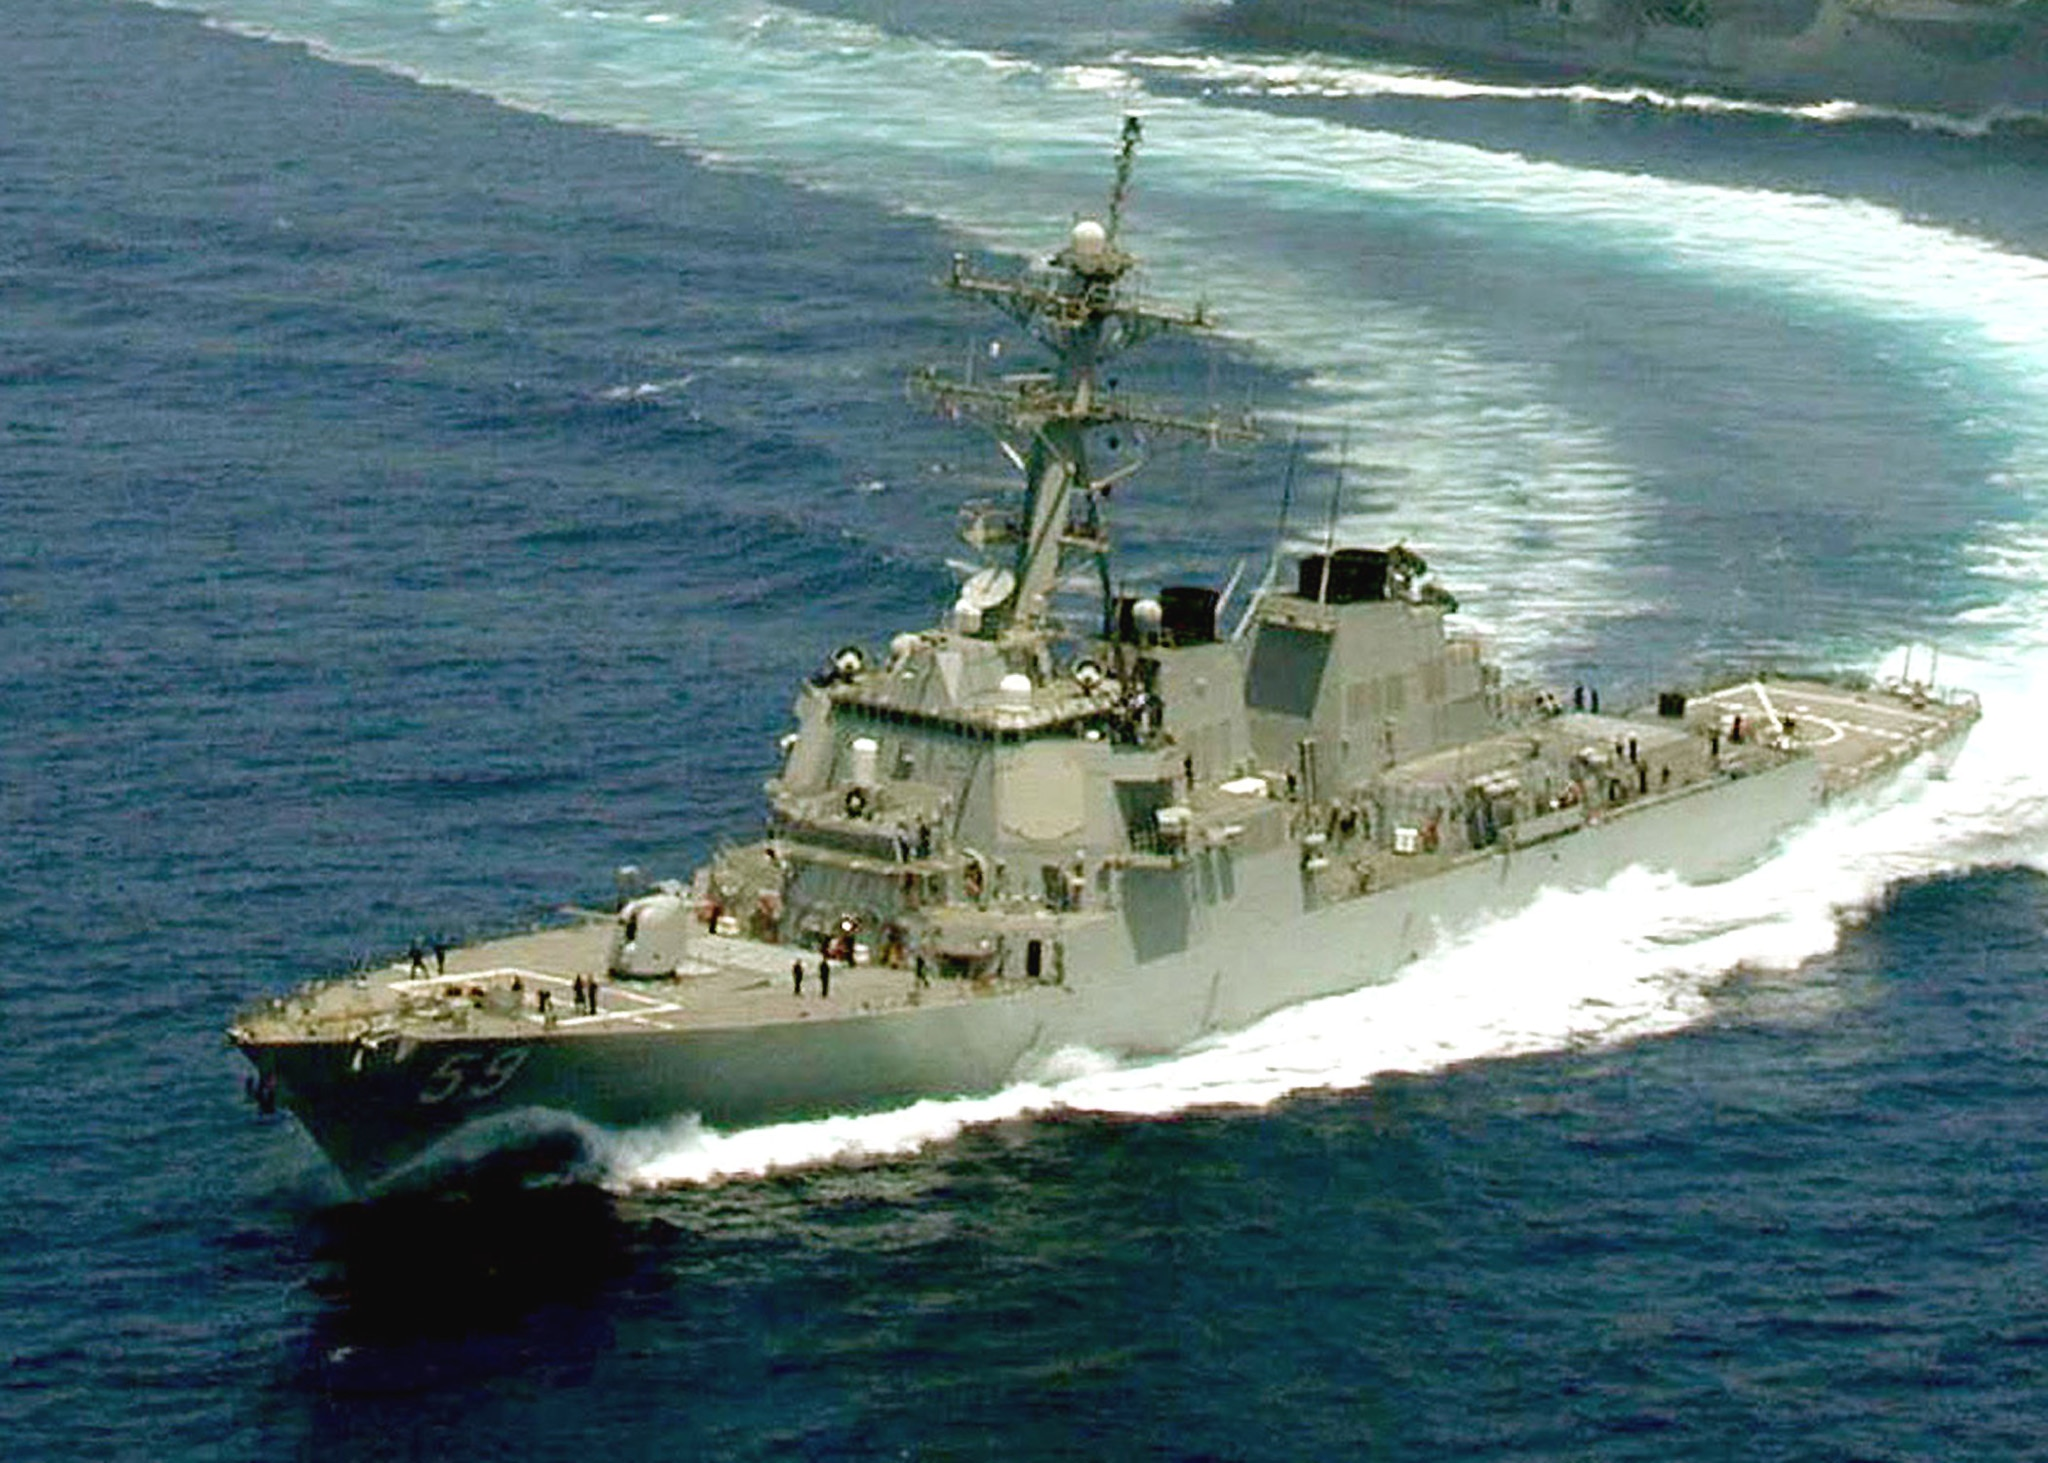 After China Protests Passage of US Warships, Tension Increases in Taiwan Strait